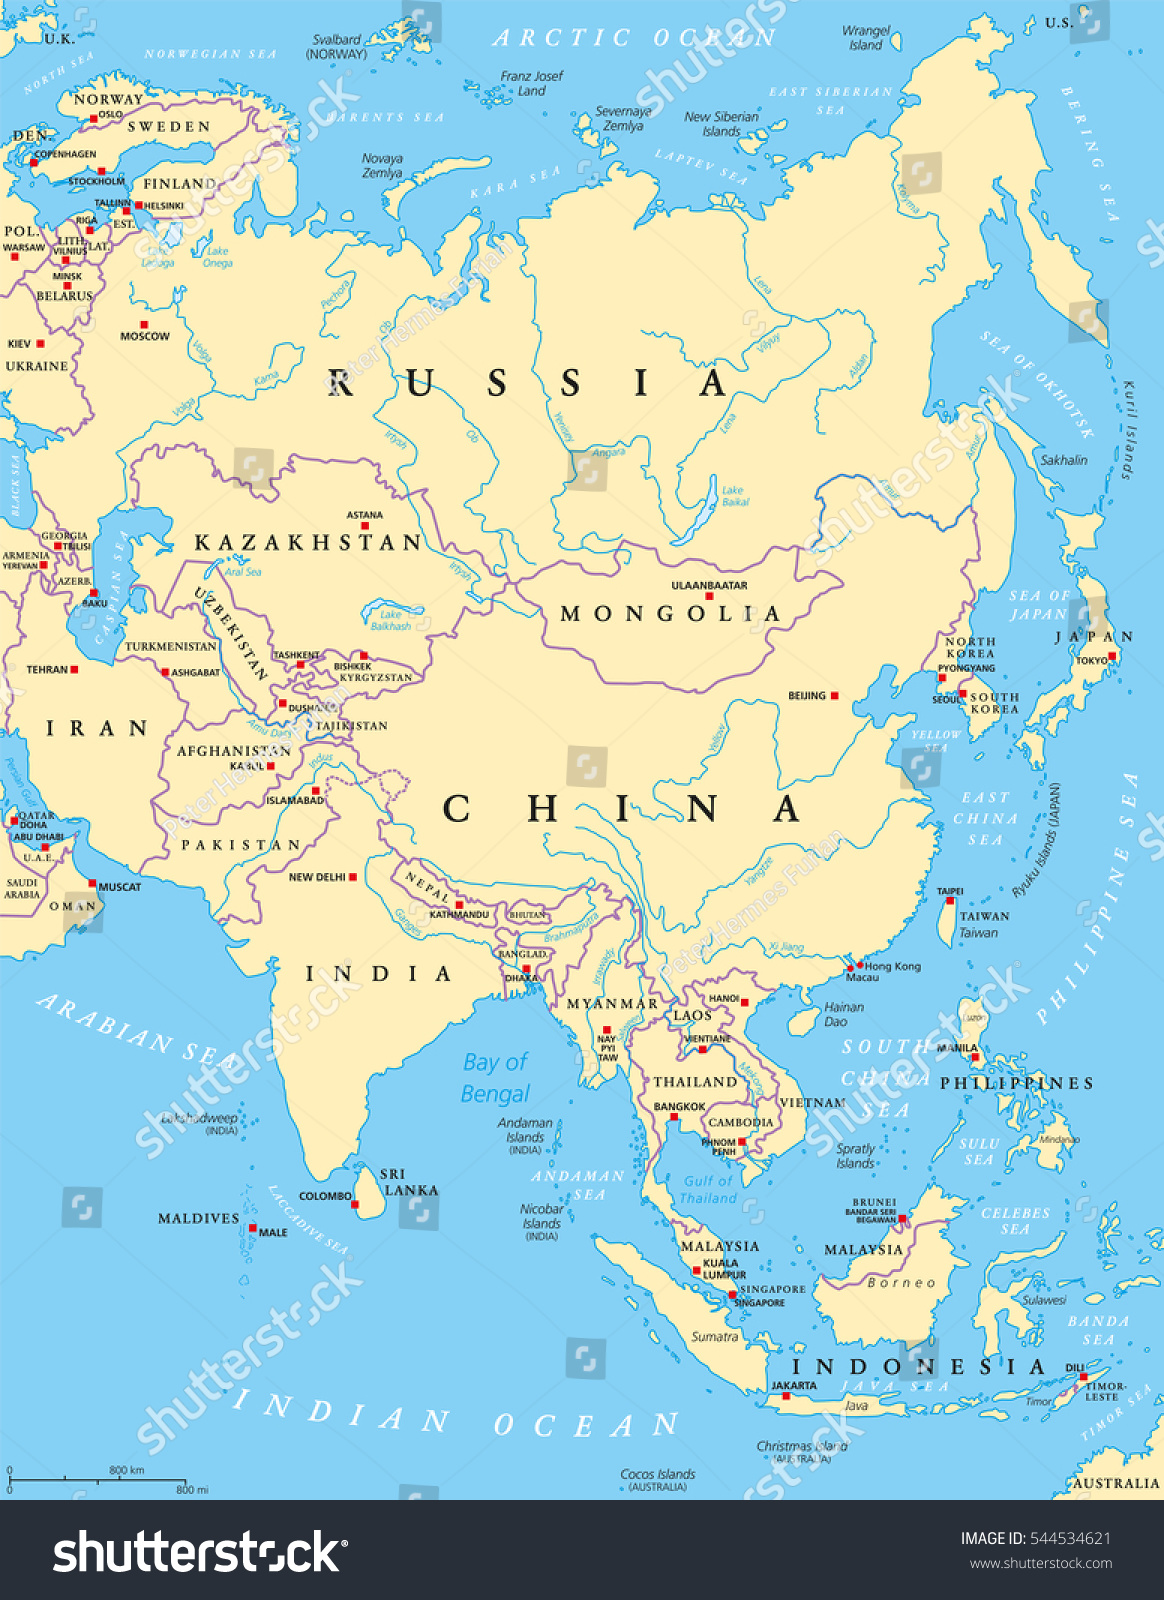 Asia political map capitals national borders vectores en stock asia political map with capitals national borders rivers and lakes largest continent with gumiabroncs Choice Image